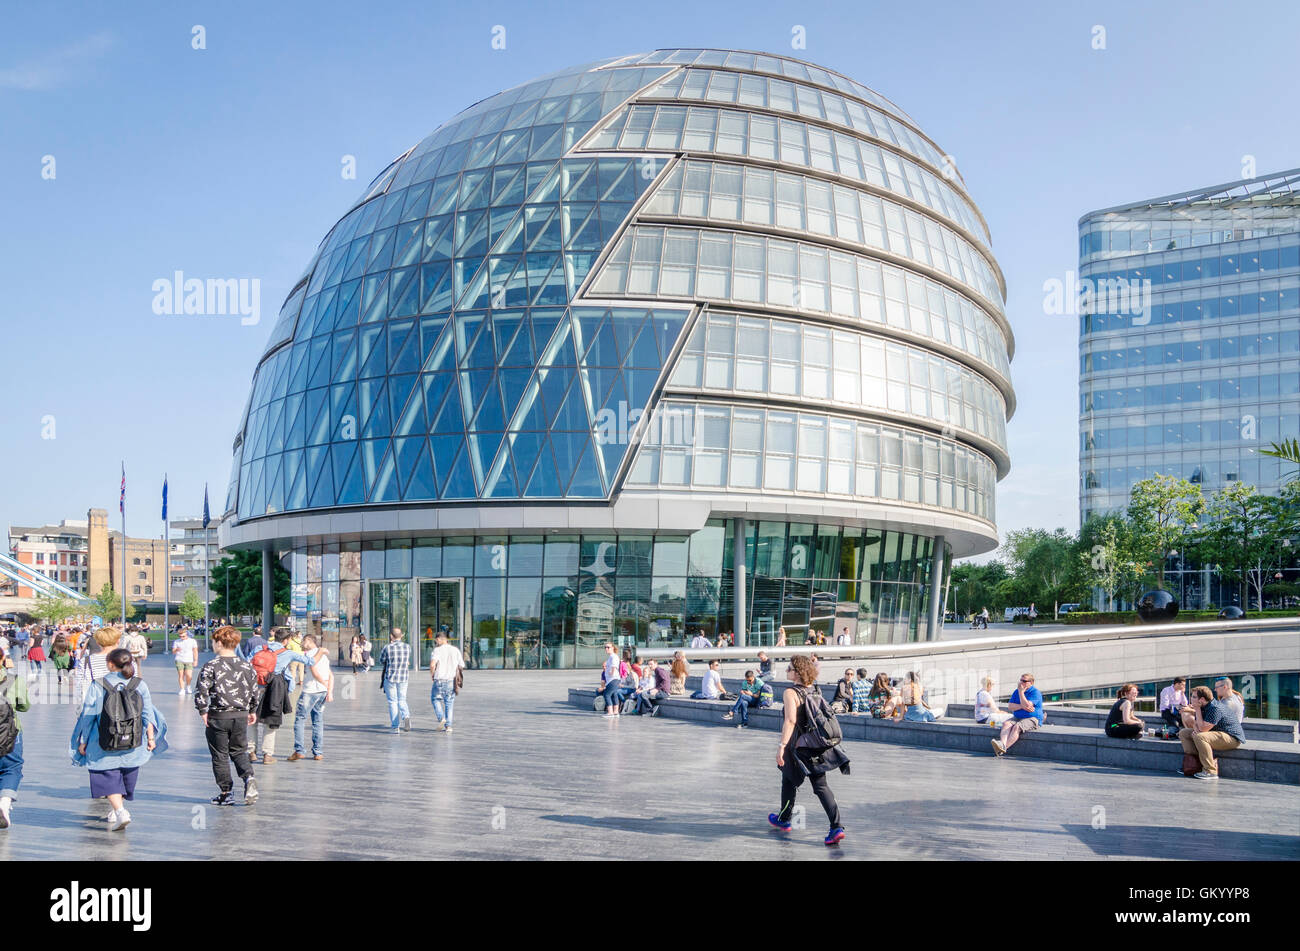 People outside City Hall, London, UK - Stock Image